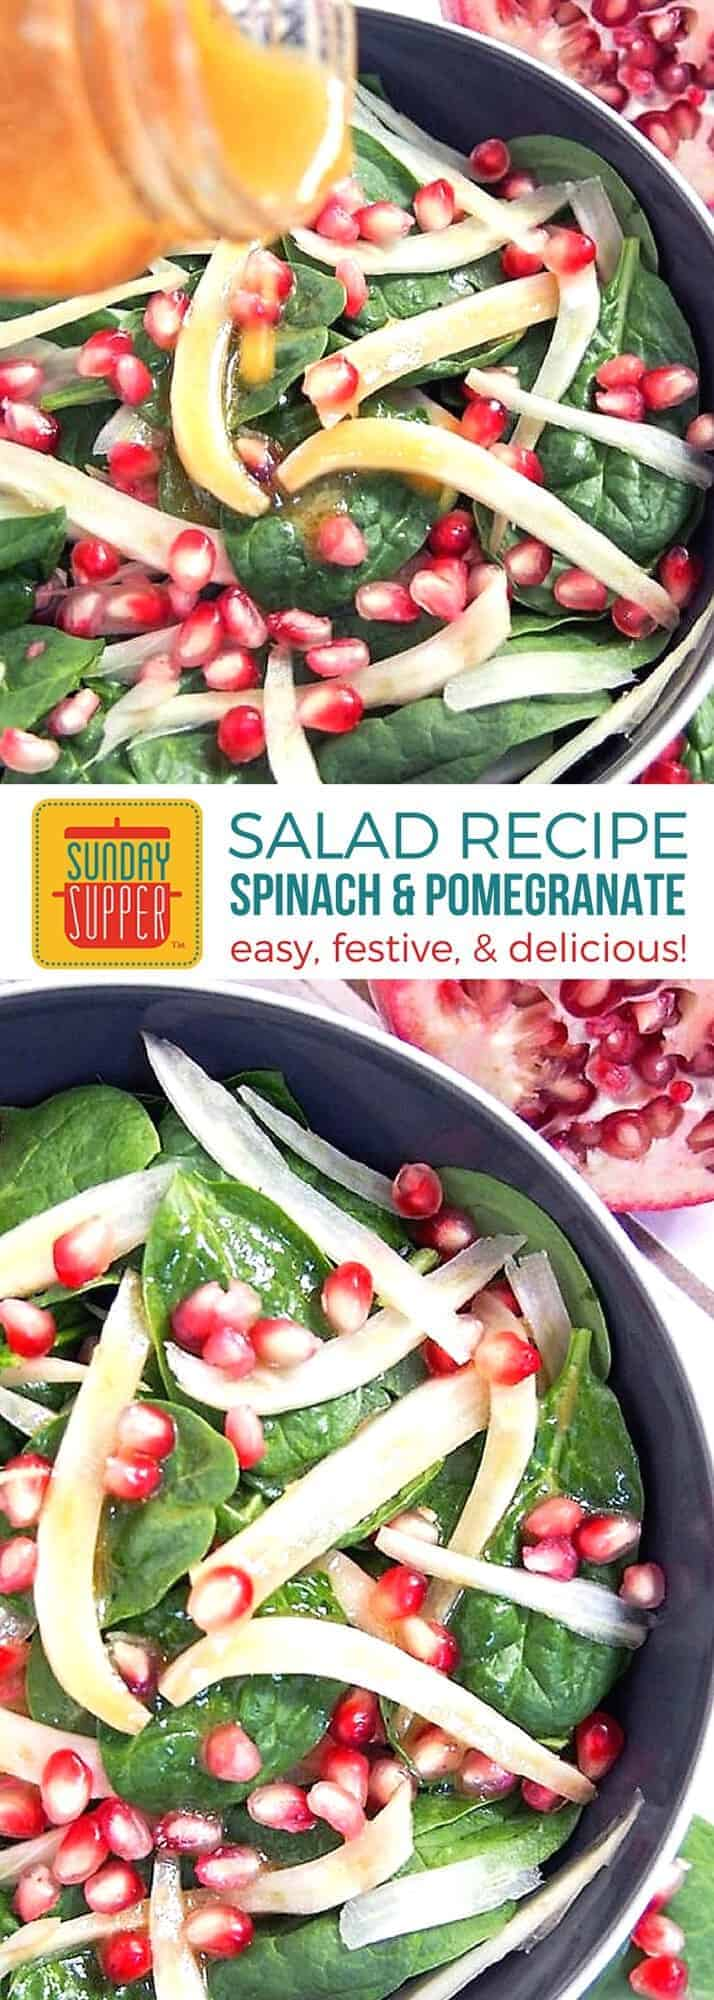 Our Spinach Pomegranate Salad is the perfect addition to your holiday table. With bright festive colors and just a few ingredients, this easy holiday salad recipe is light, fresh and adaptable. You'll love the little bites of pomegranate popping on your tongue! Perfect holiday salad recipe! #SundaySupper #SaladRecipes #HolidayRecipes